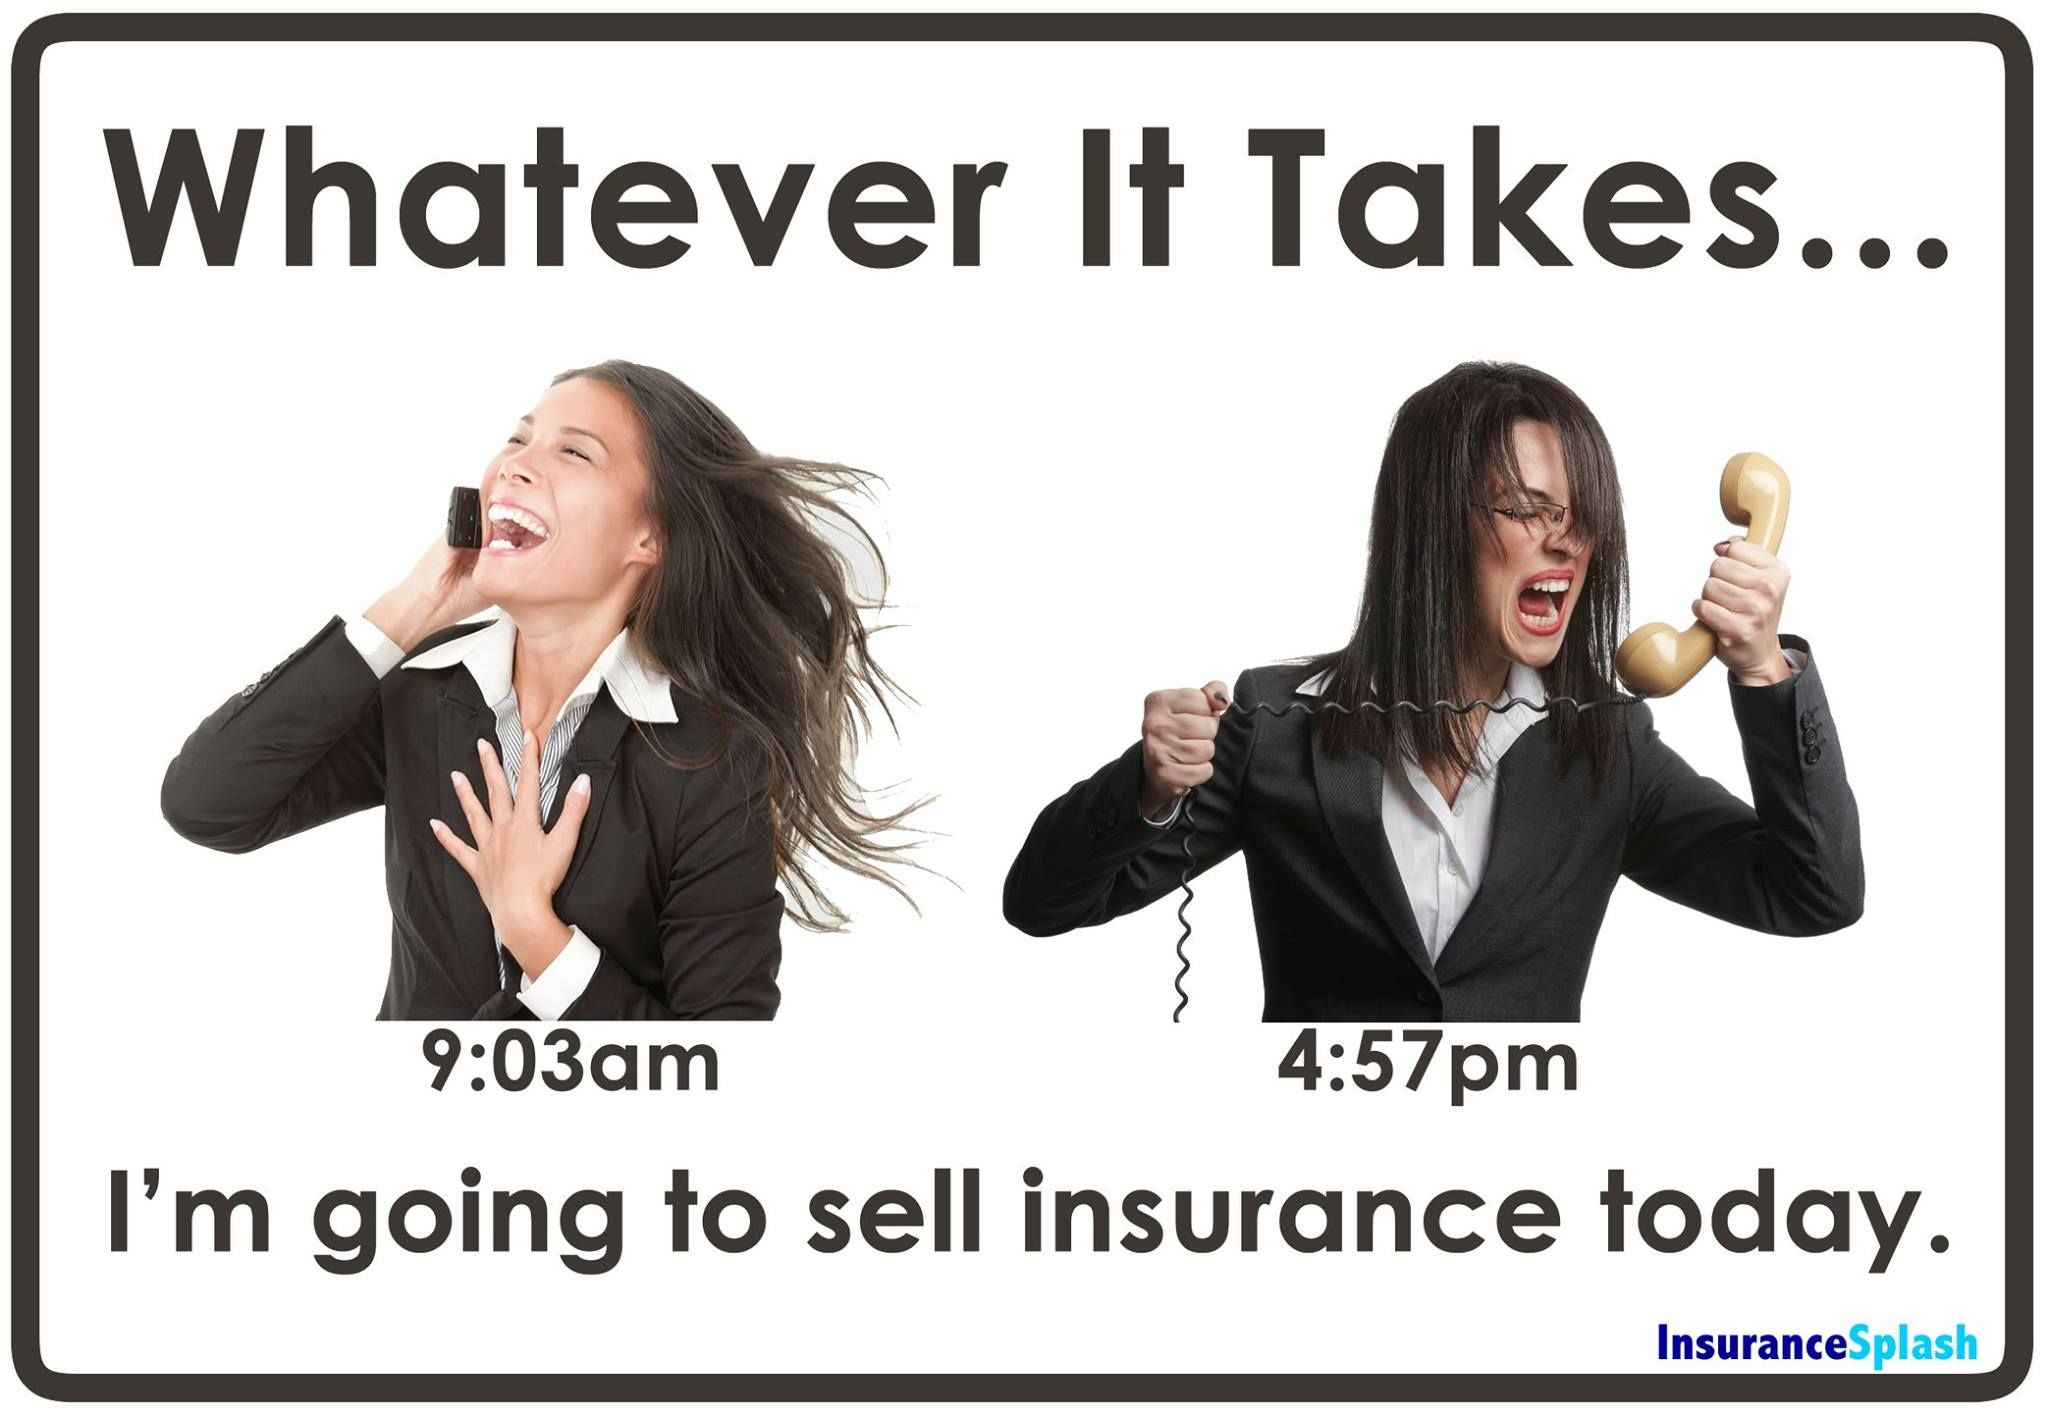 Another Day In The Life Of Selling Insurance Insurance Marketing Insurance Meme Insurance Quotes